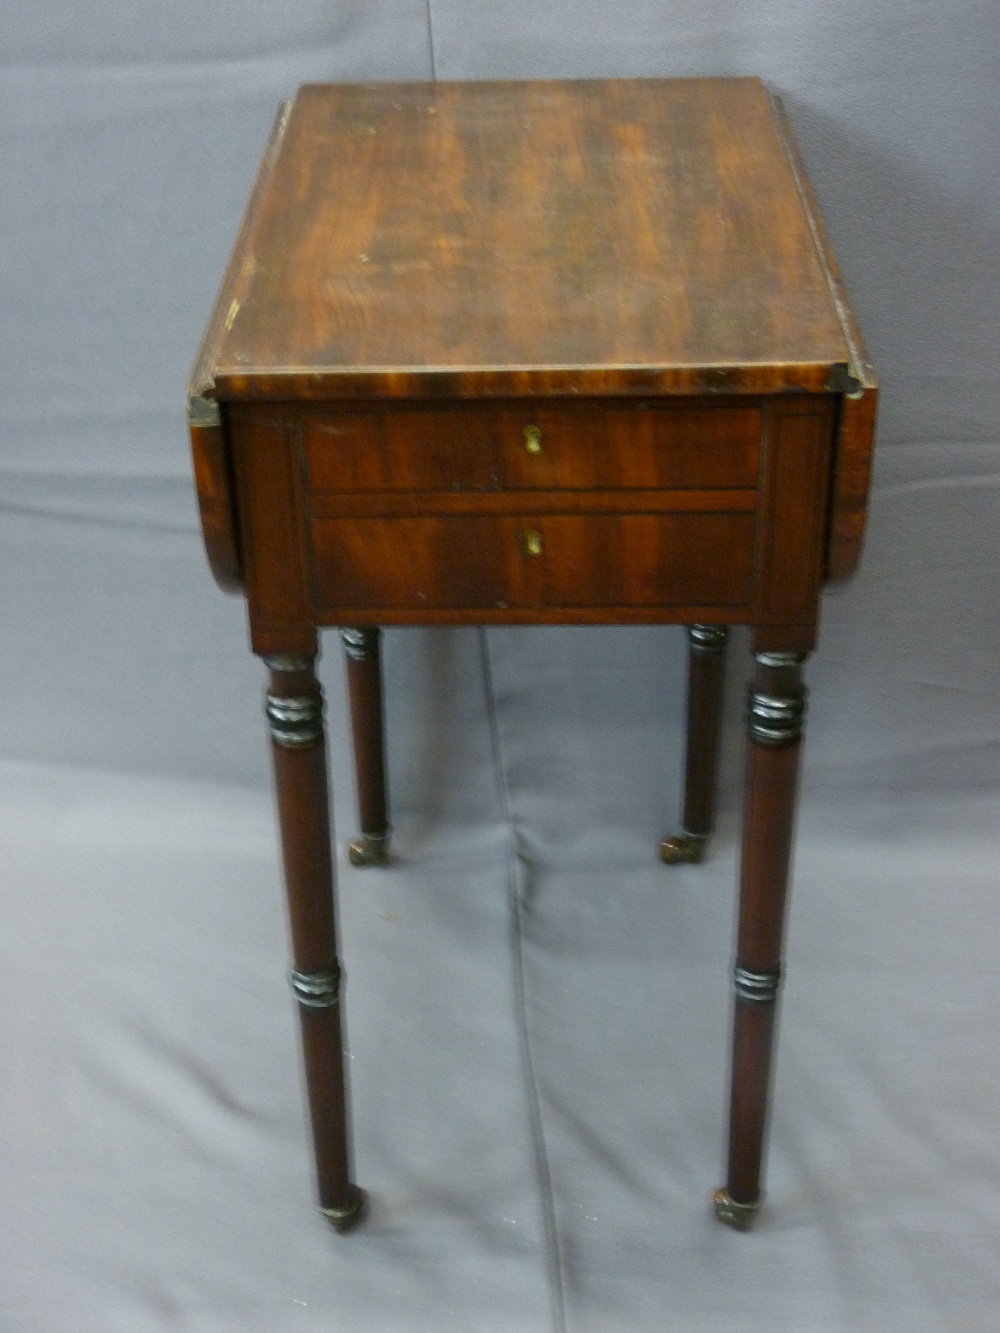 Lot 26 - ANTIQUE PEMBROKE TABLE on turned supports with two single end drawers, a two tier planter and a